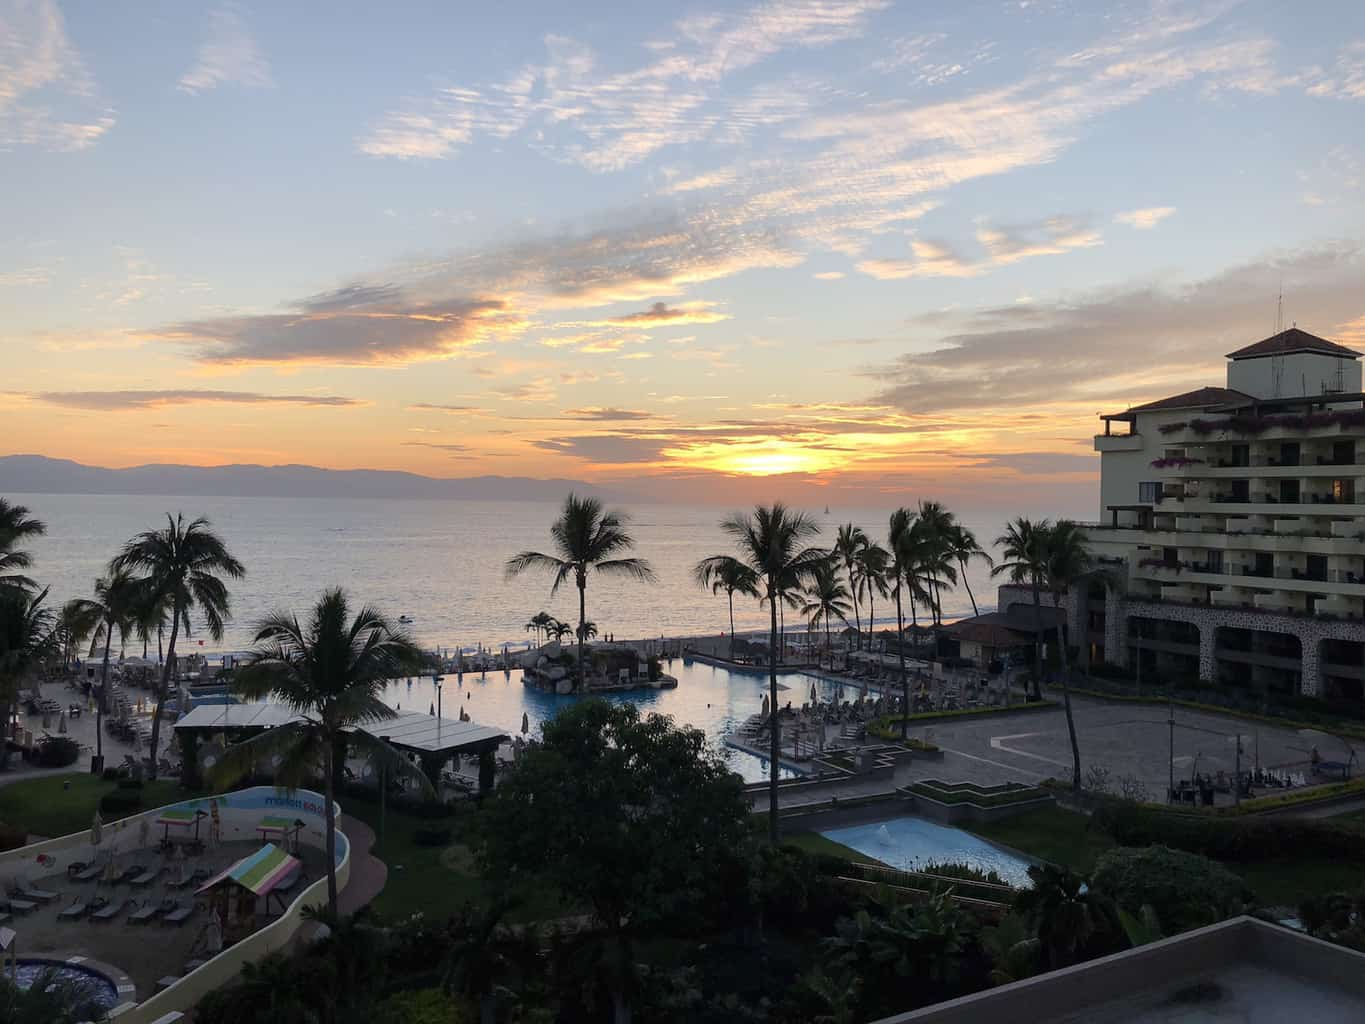 Imagine lounging on your private balcony, taking in the view of the ocean while enjoying the sunset. | Marriott Puerto Vallarta Resort & Spa | where to stay in Puerto Vallarta | www.TravelingWellForLess.com